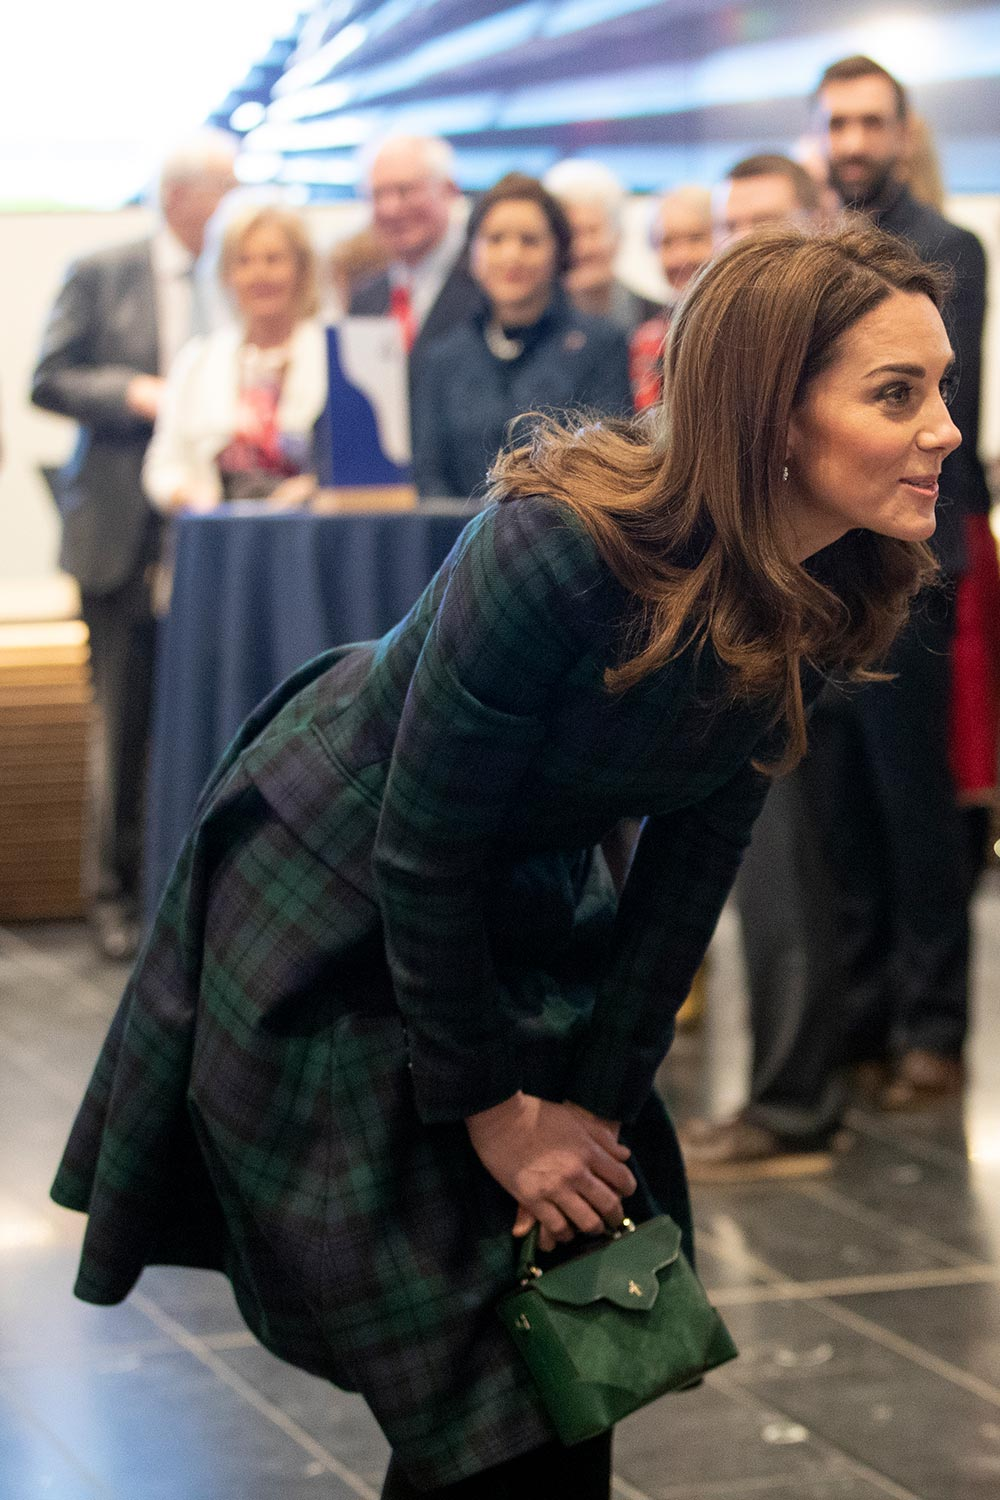 kate middleton s favourite brands the duchess of cambridge s fashion style analysed kate middleton s favourite brands the duchess of cambridge s fashion style analysed